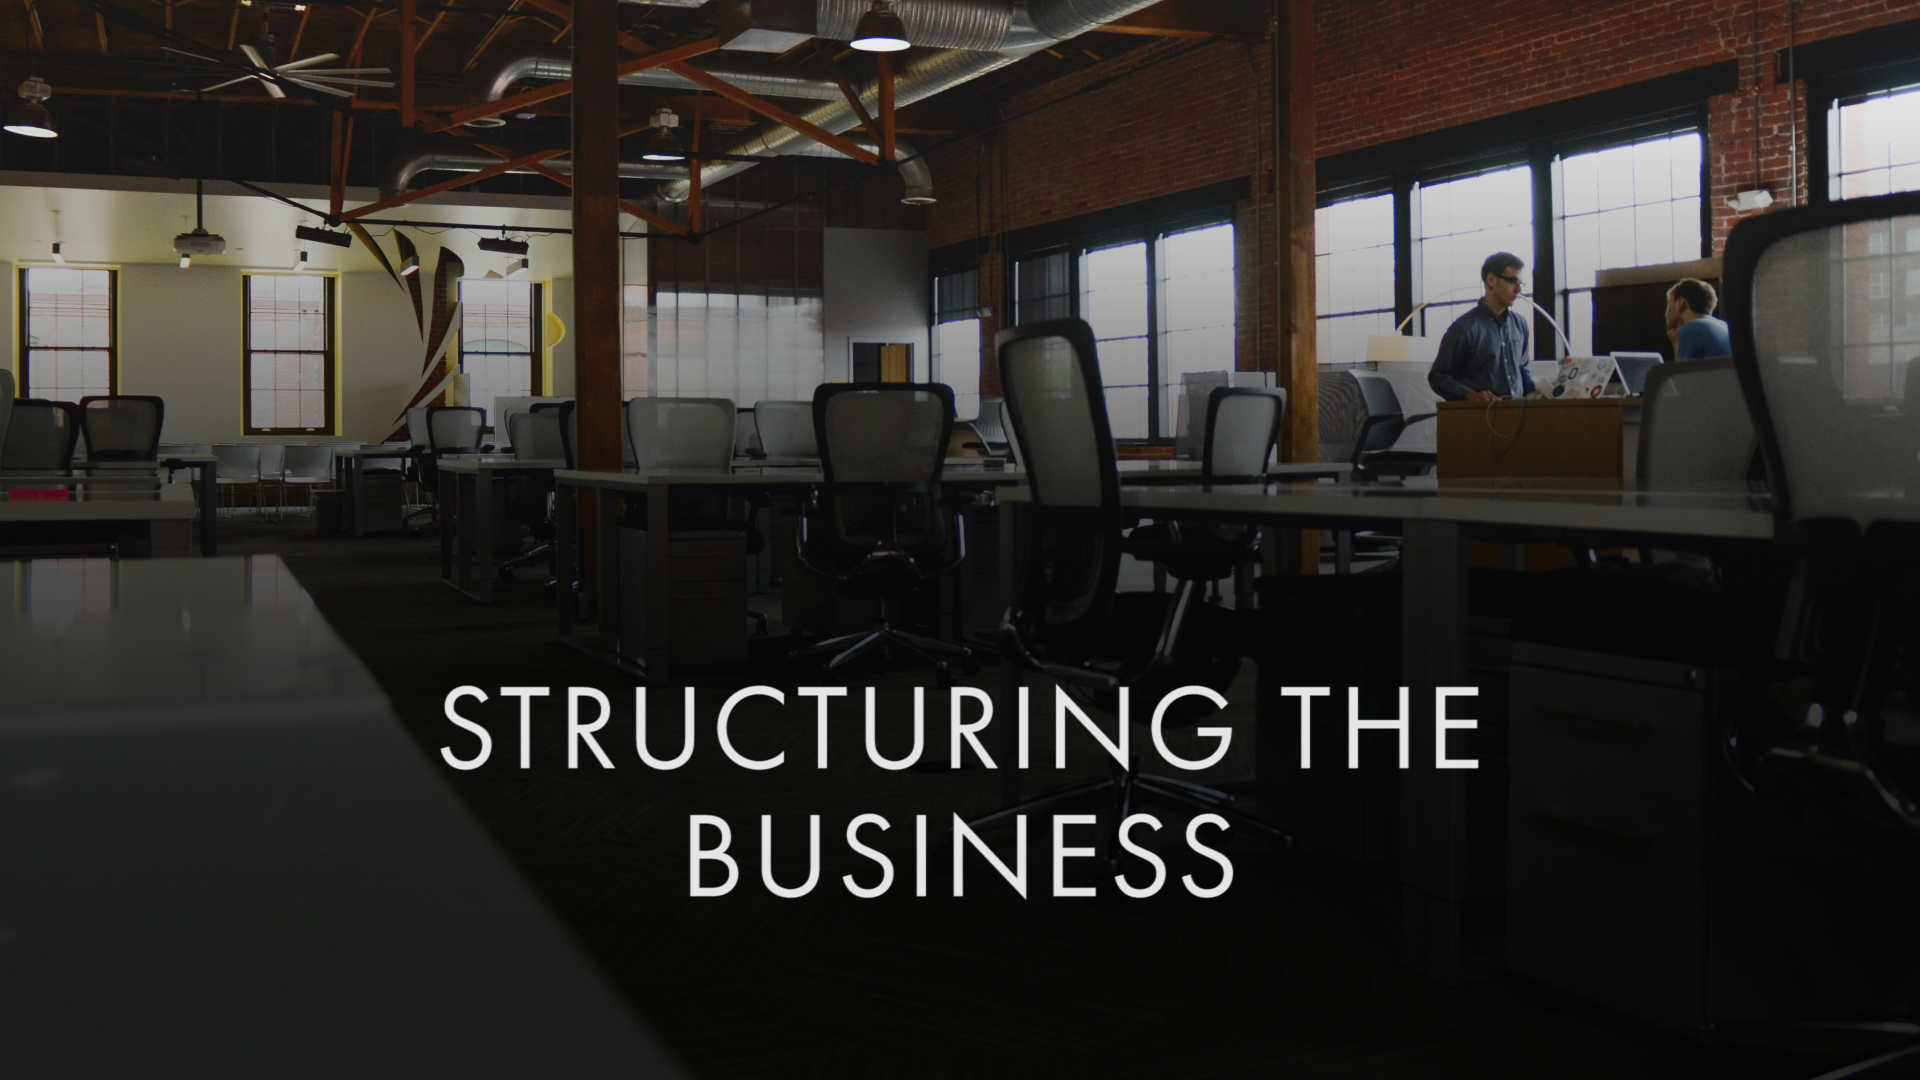 Structuring the Business